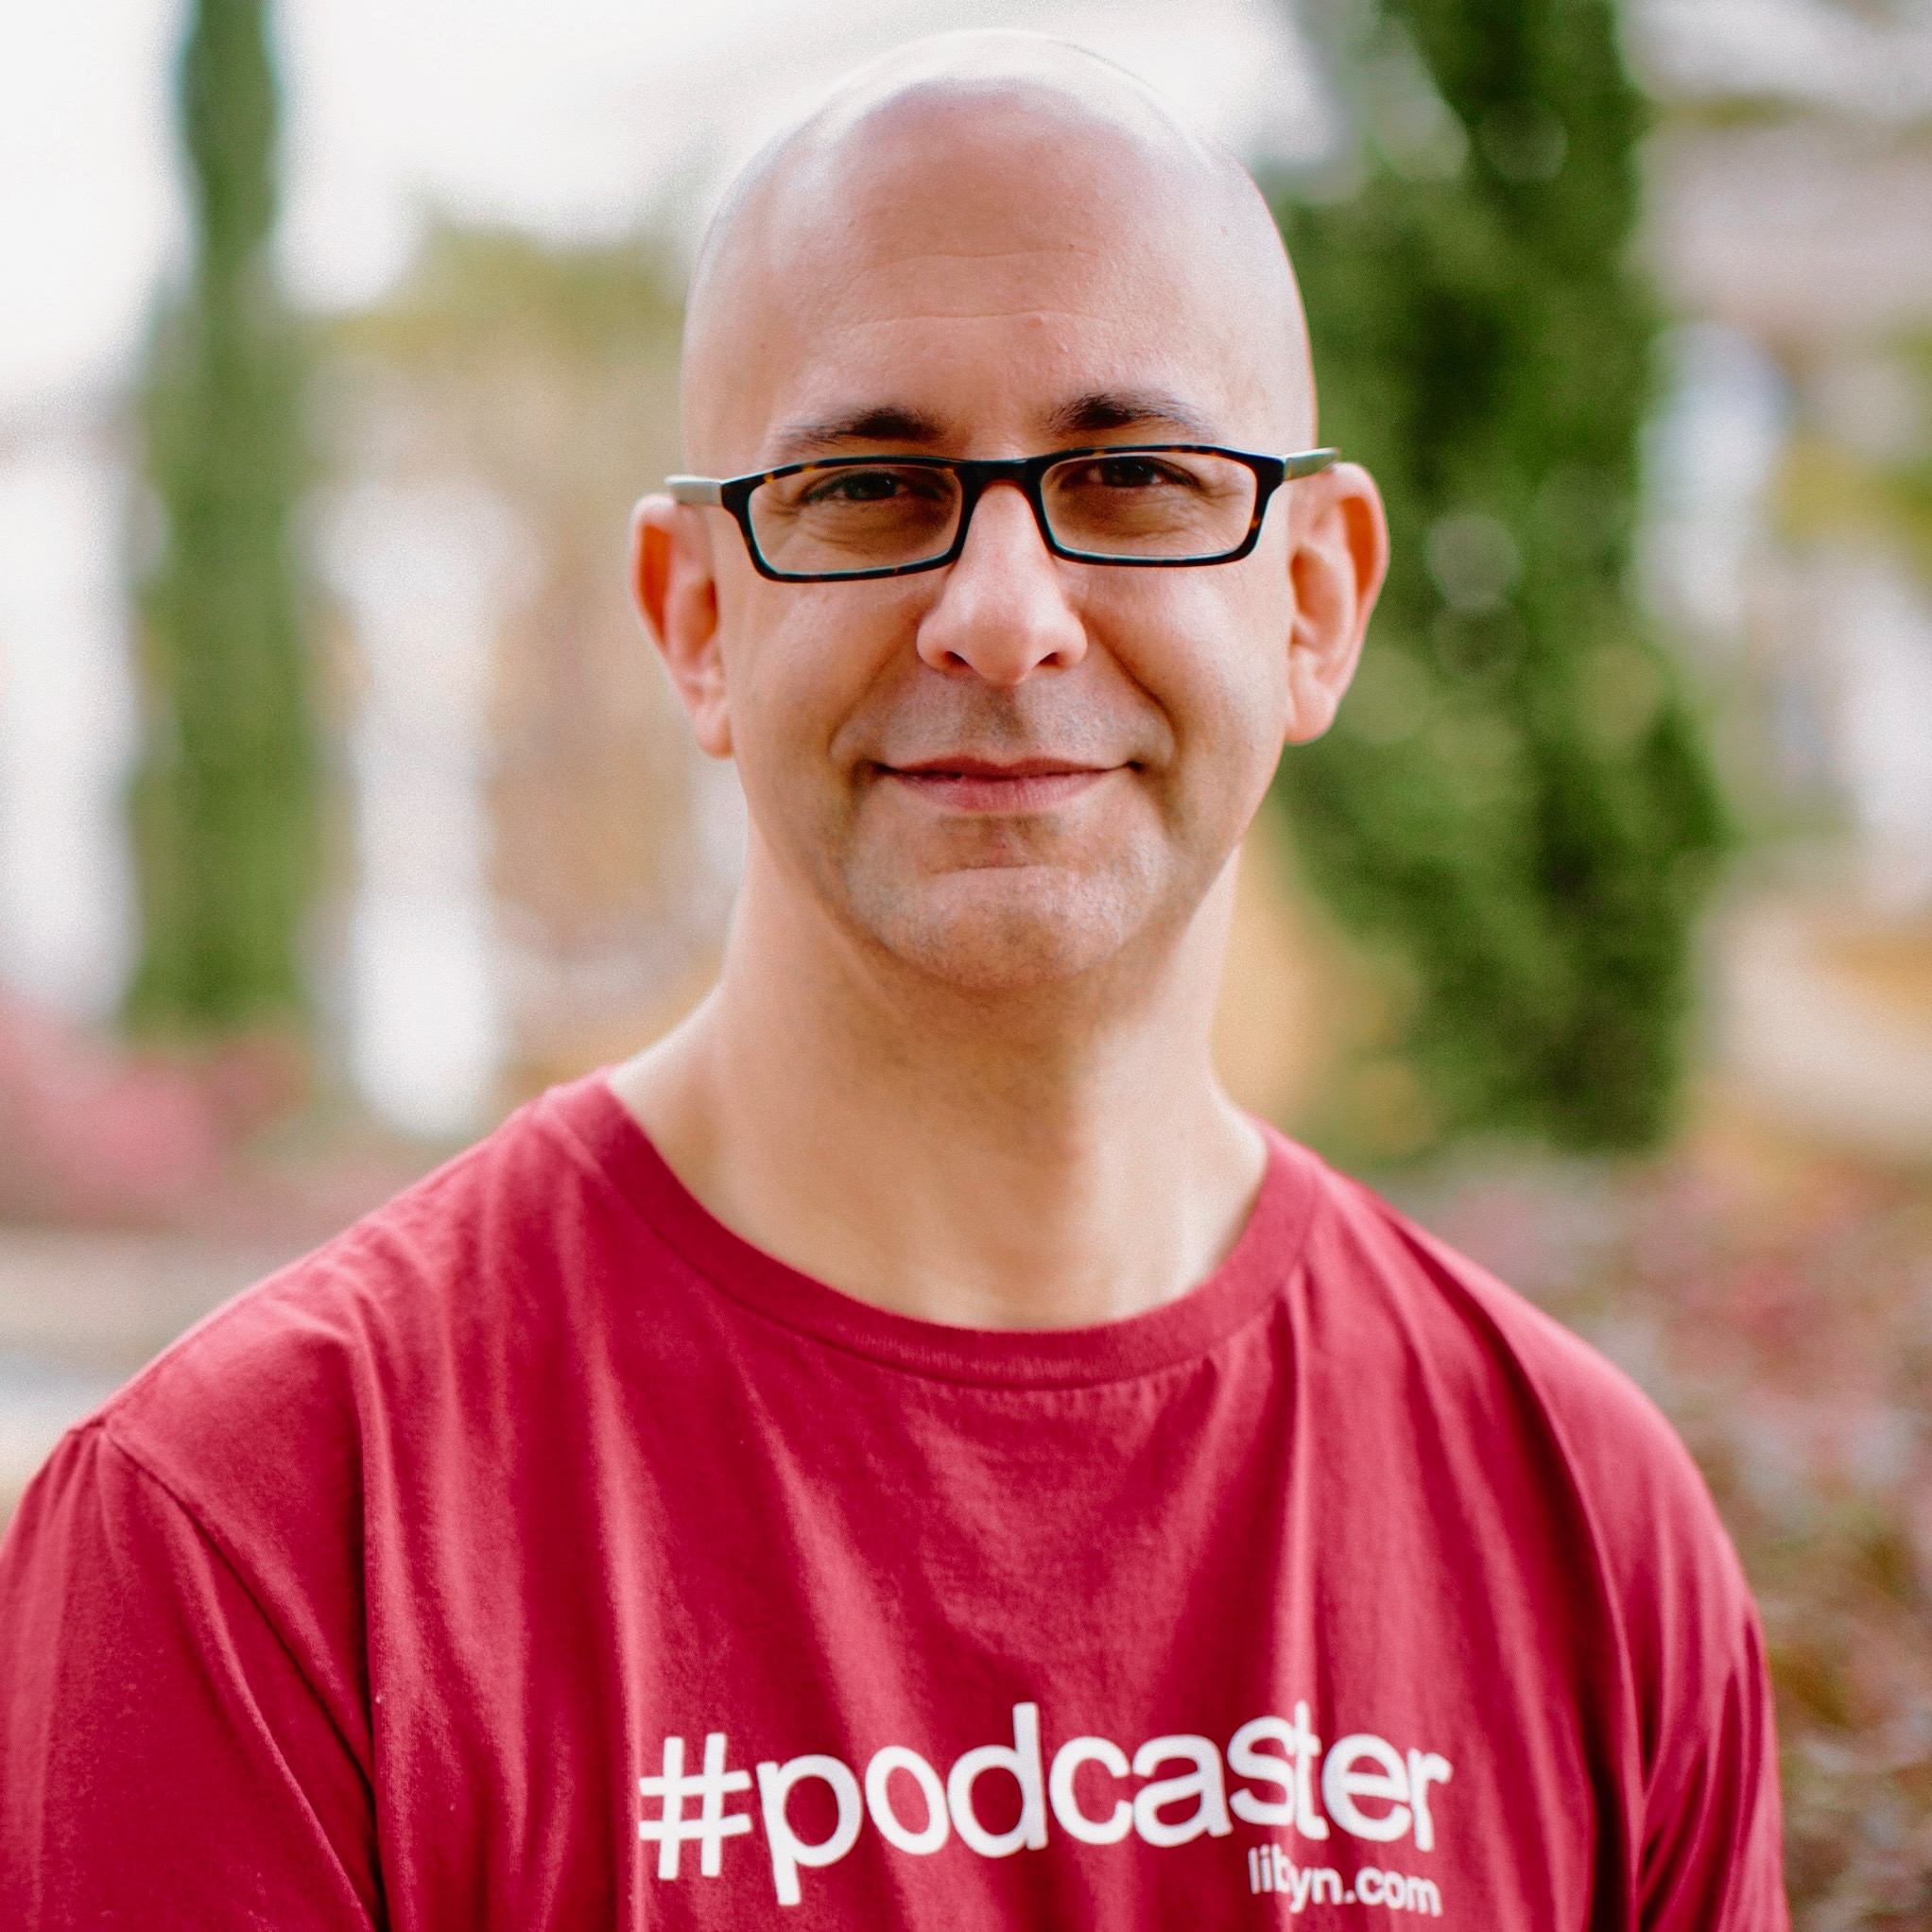 Rob Walch, VP of Podcaster Relations, Libsyn